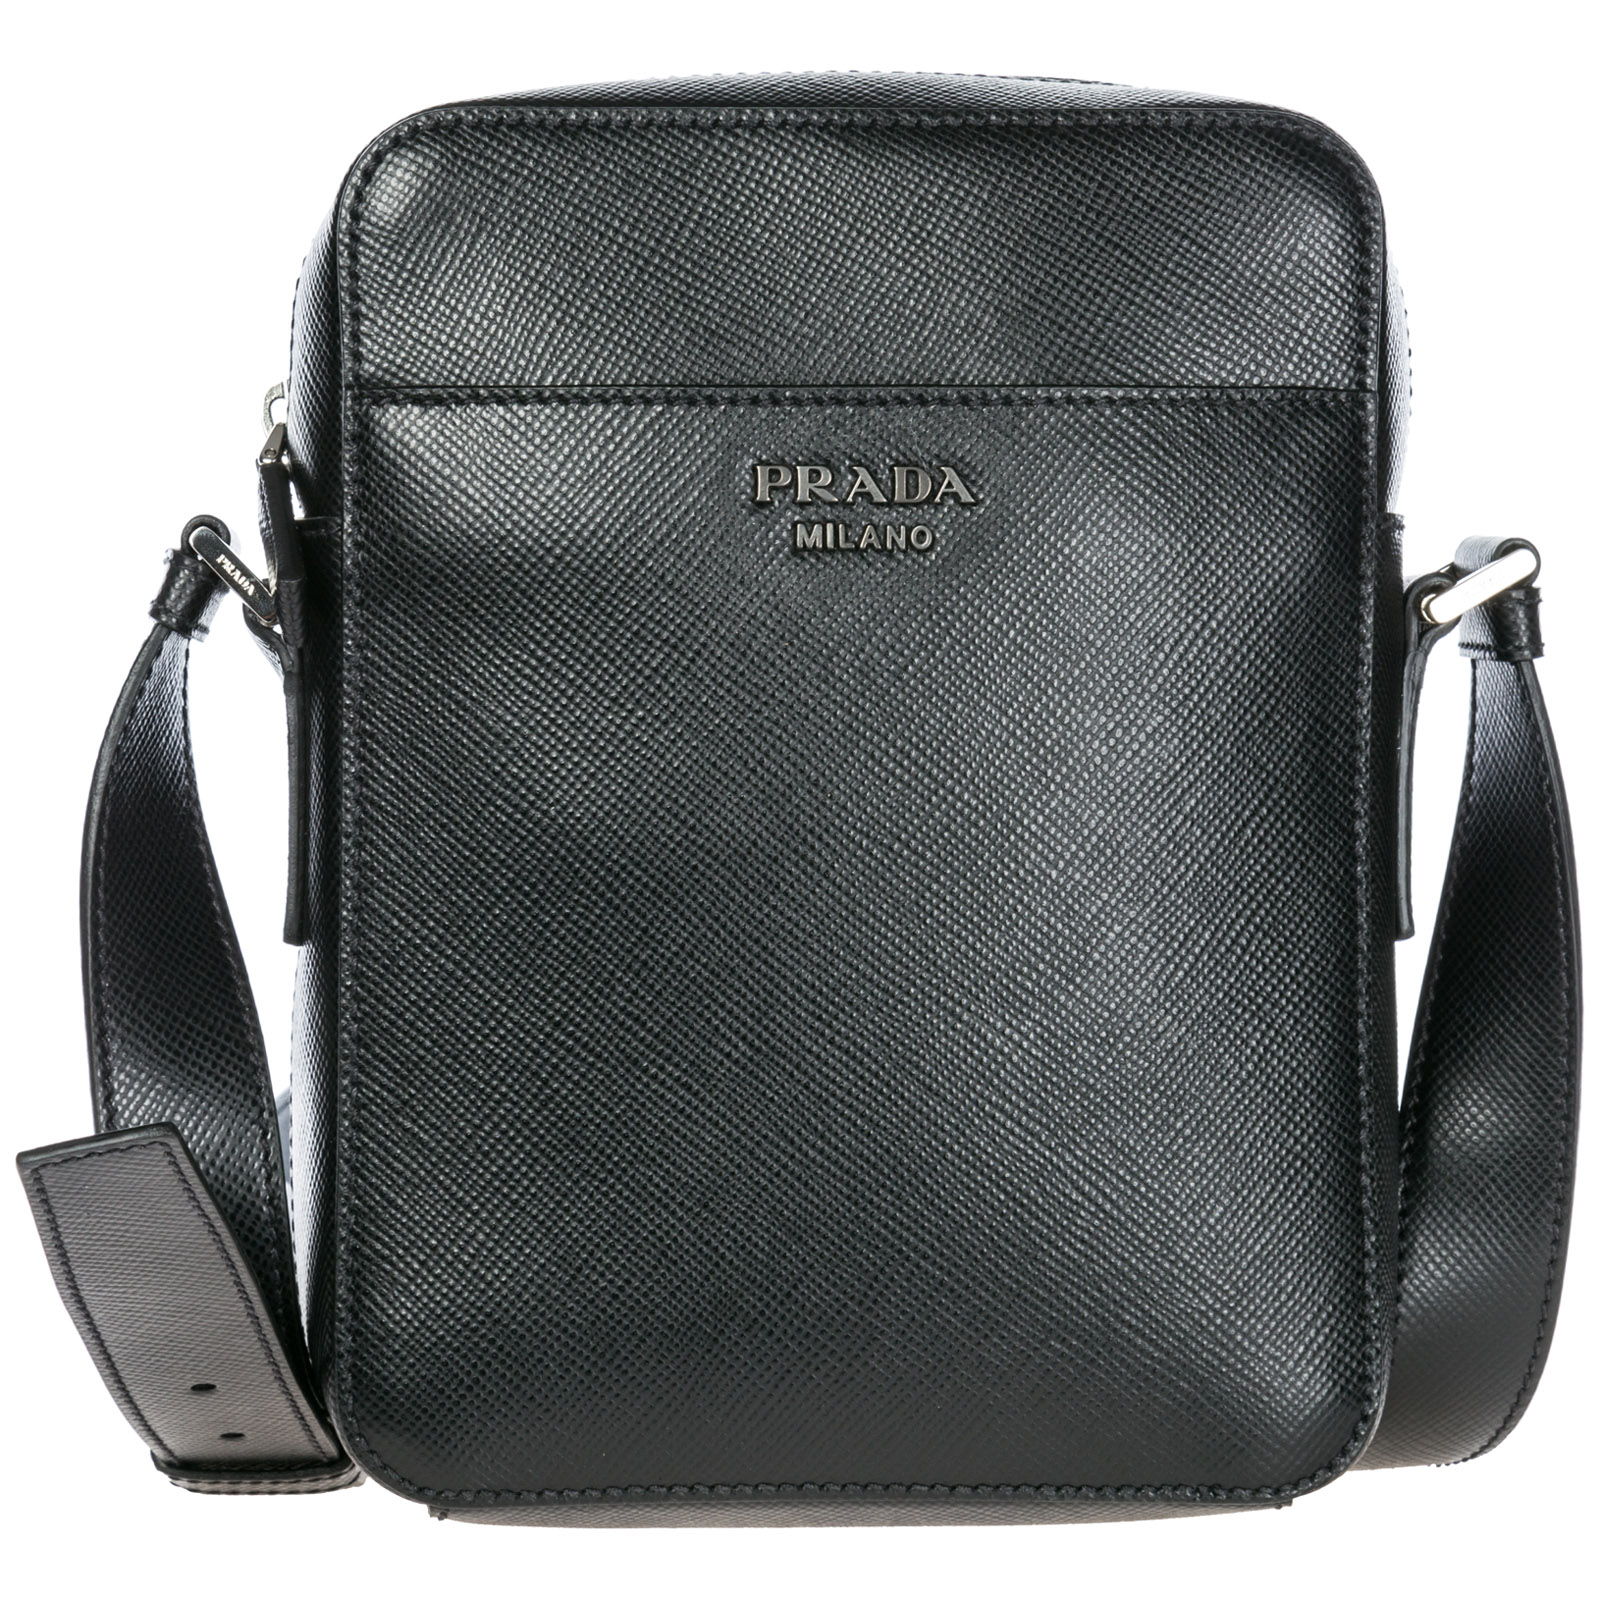 Men's leather cross-body messenger shoulder bag